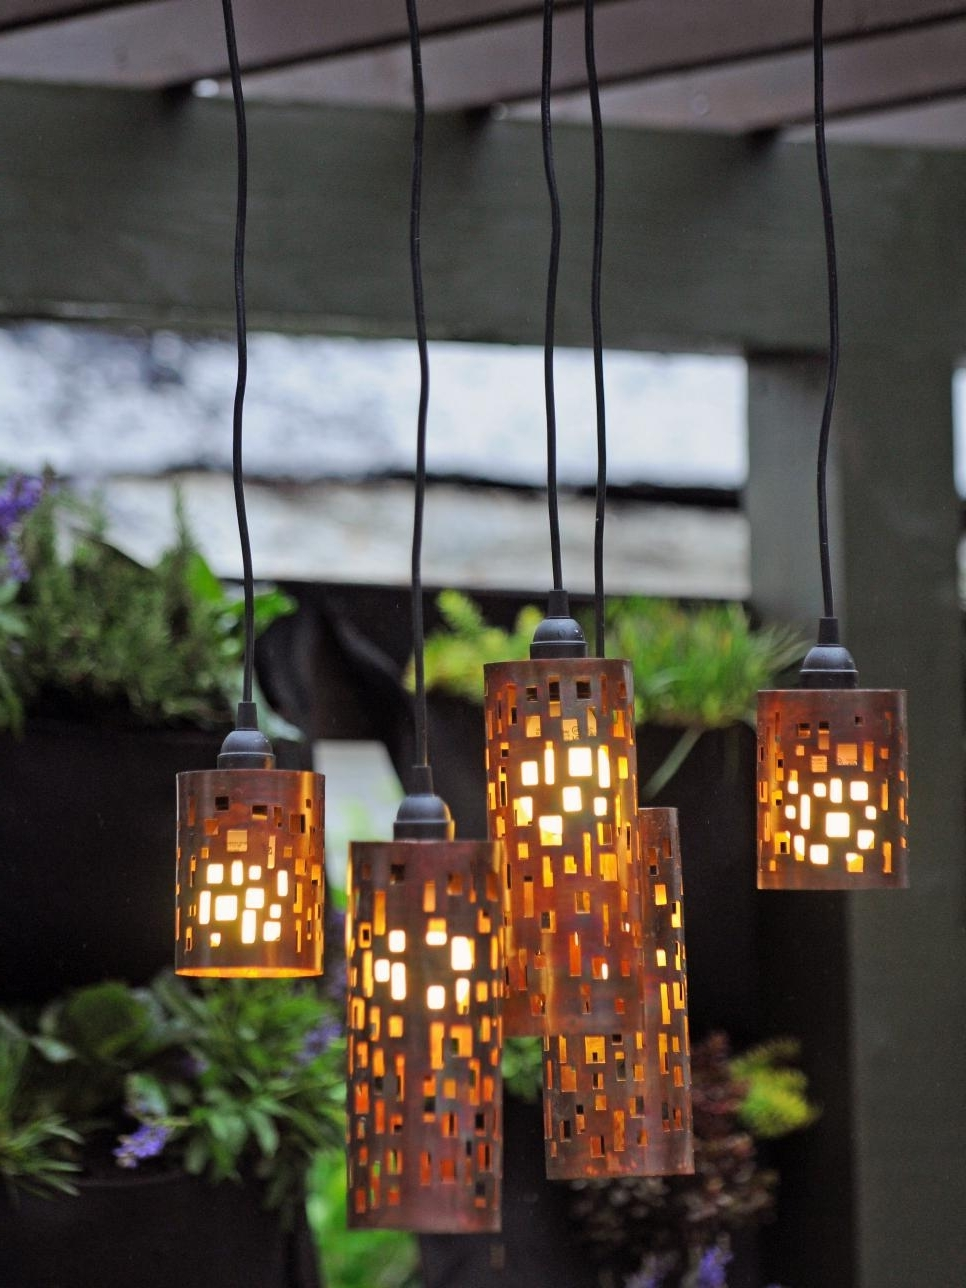 Favorite Outdoor Lighting: Amusing Outdoor Hanging Lights Patio How To Hang Intended For Outdoor Ceiling Lights For Patio (View 20 of 20)